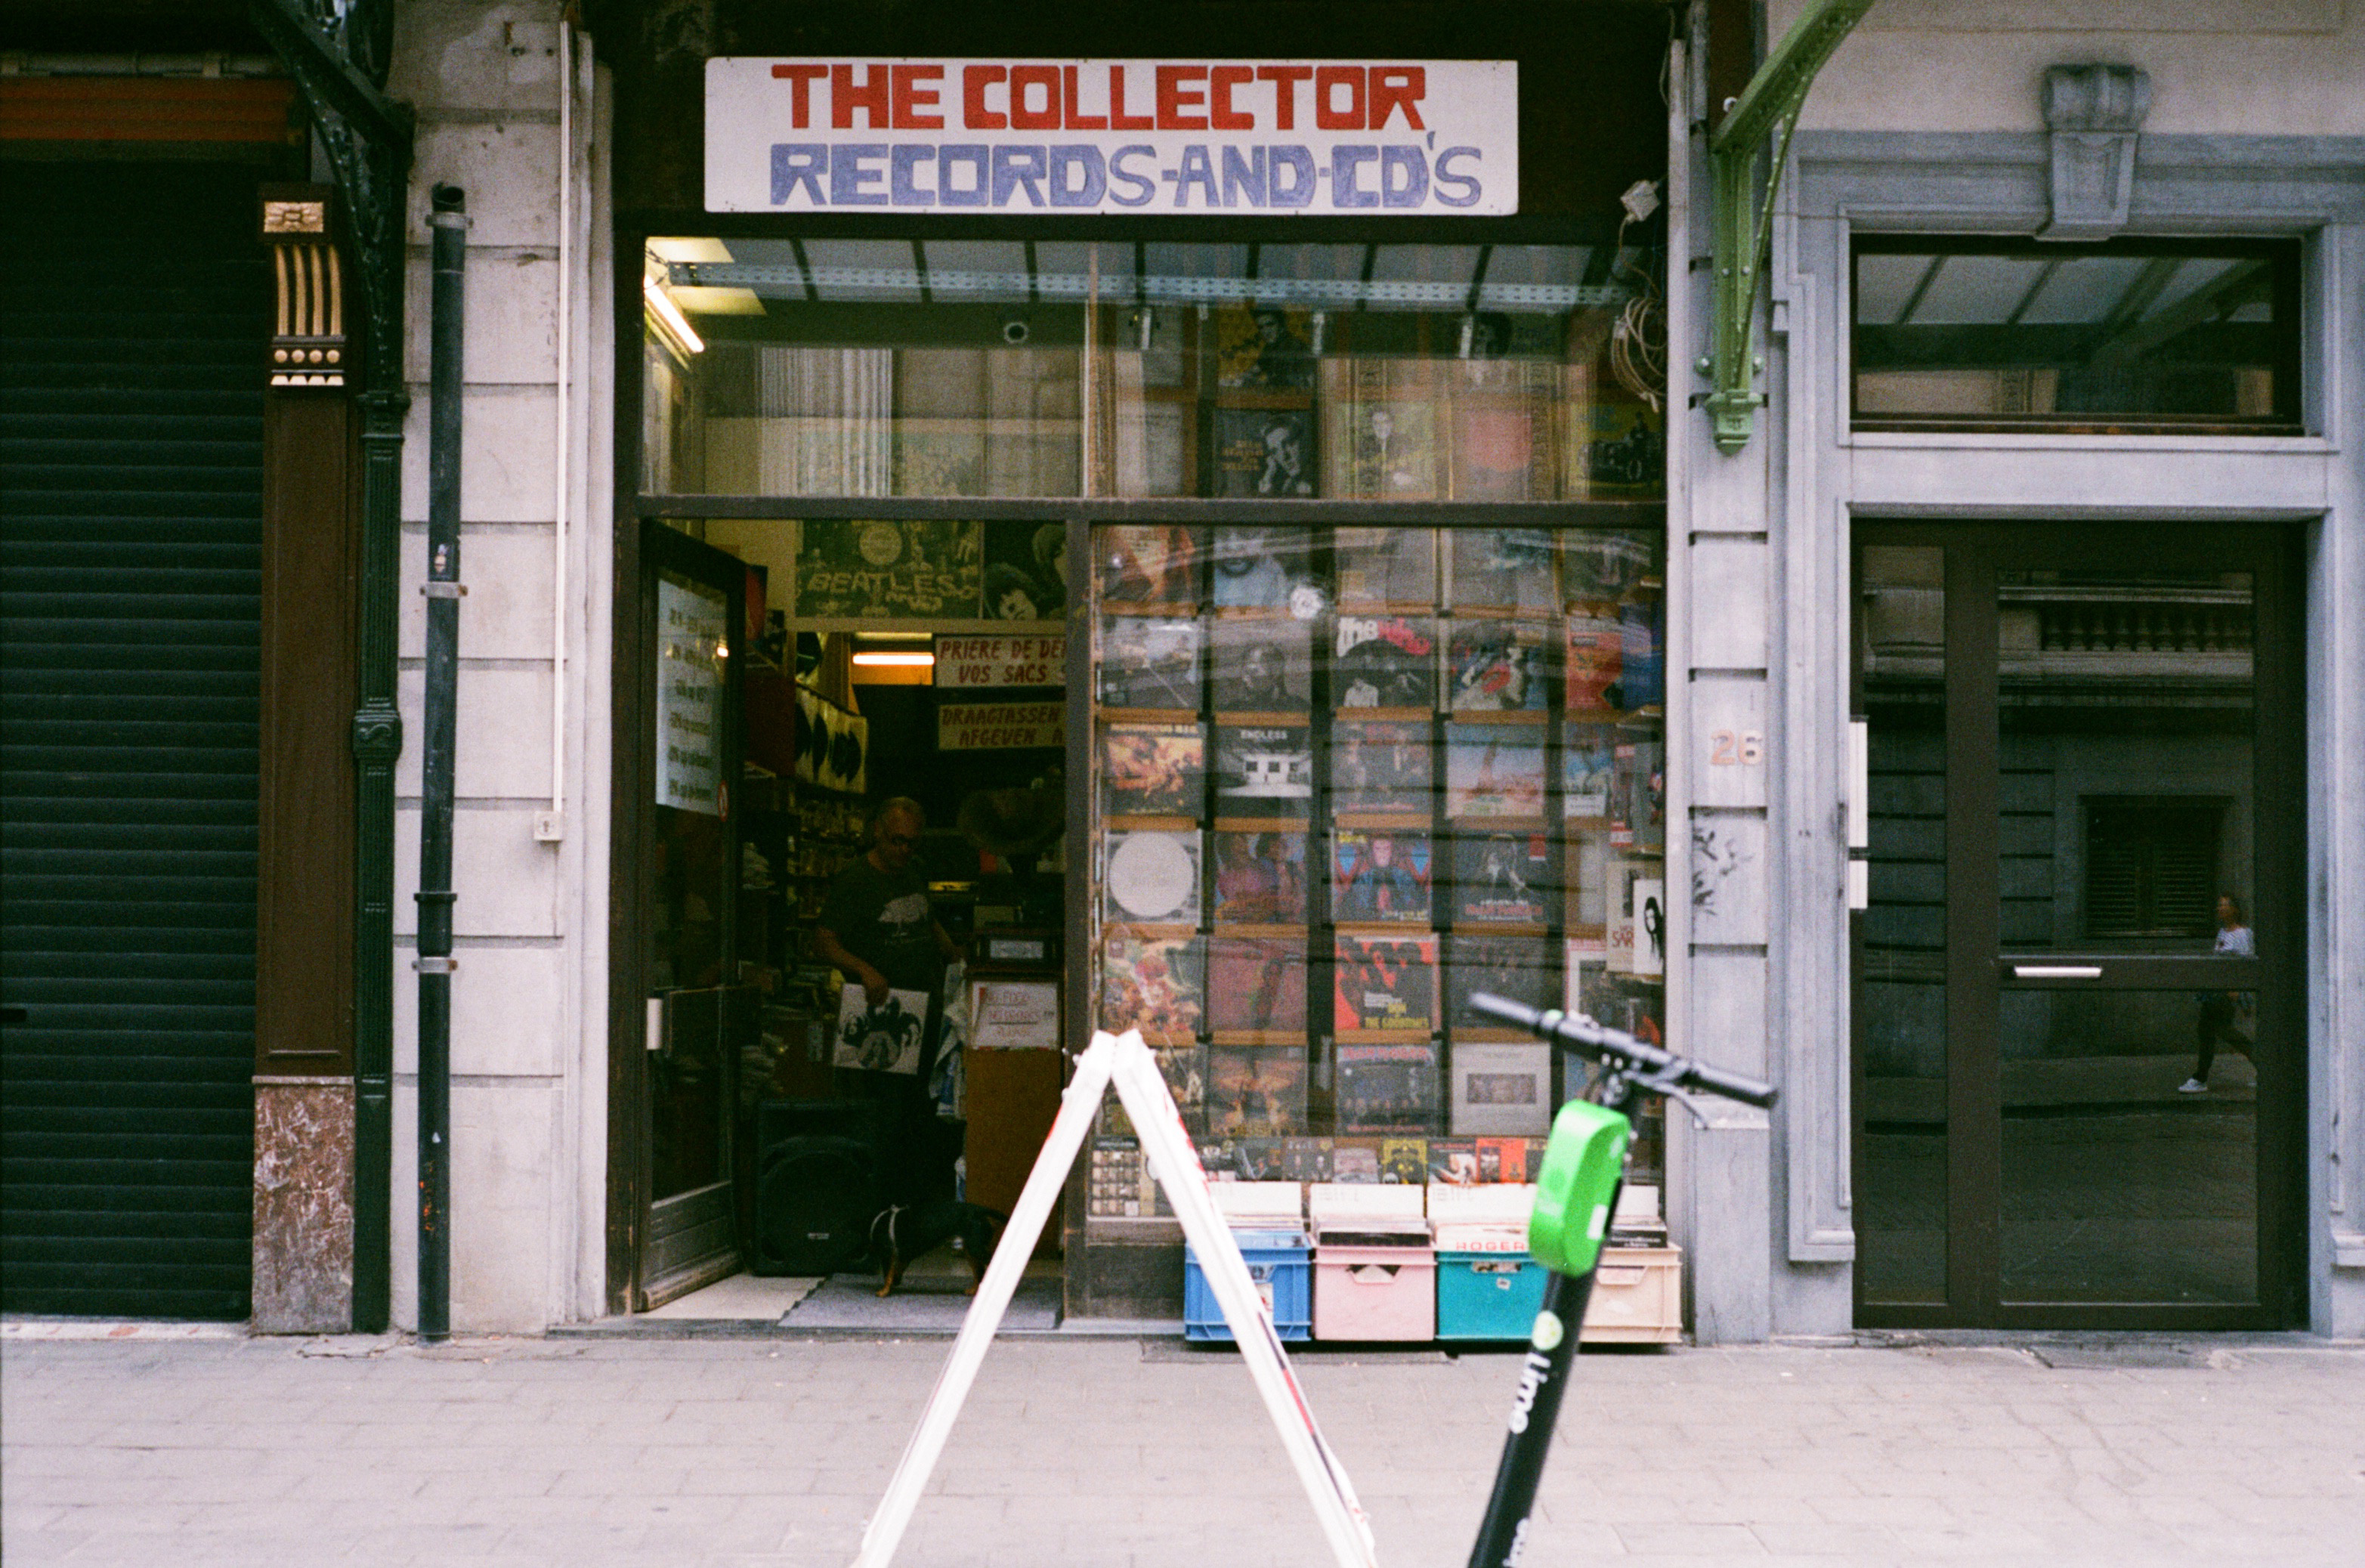 For records you visited the collector in Brussels